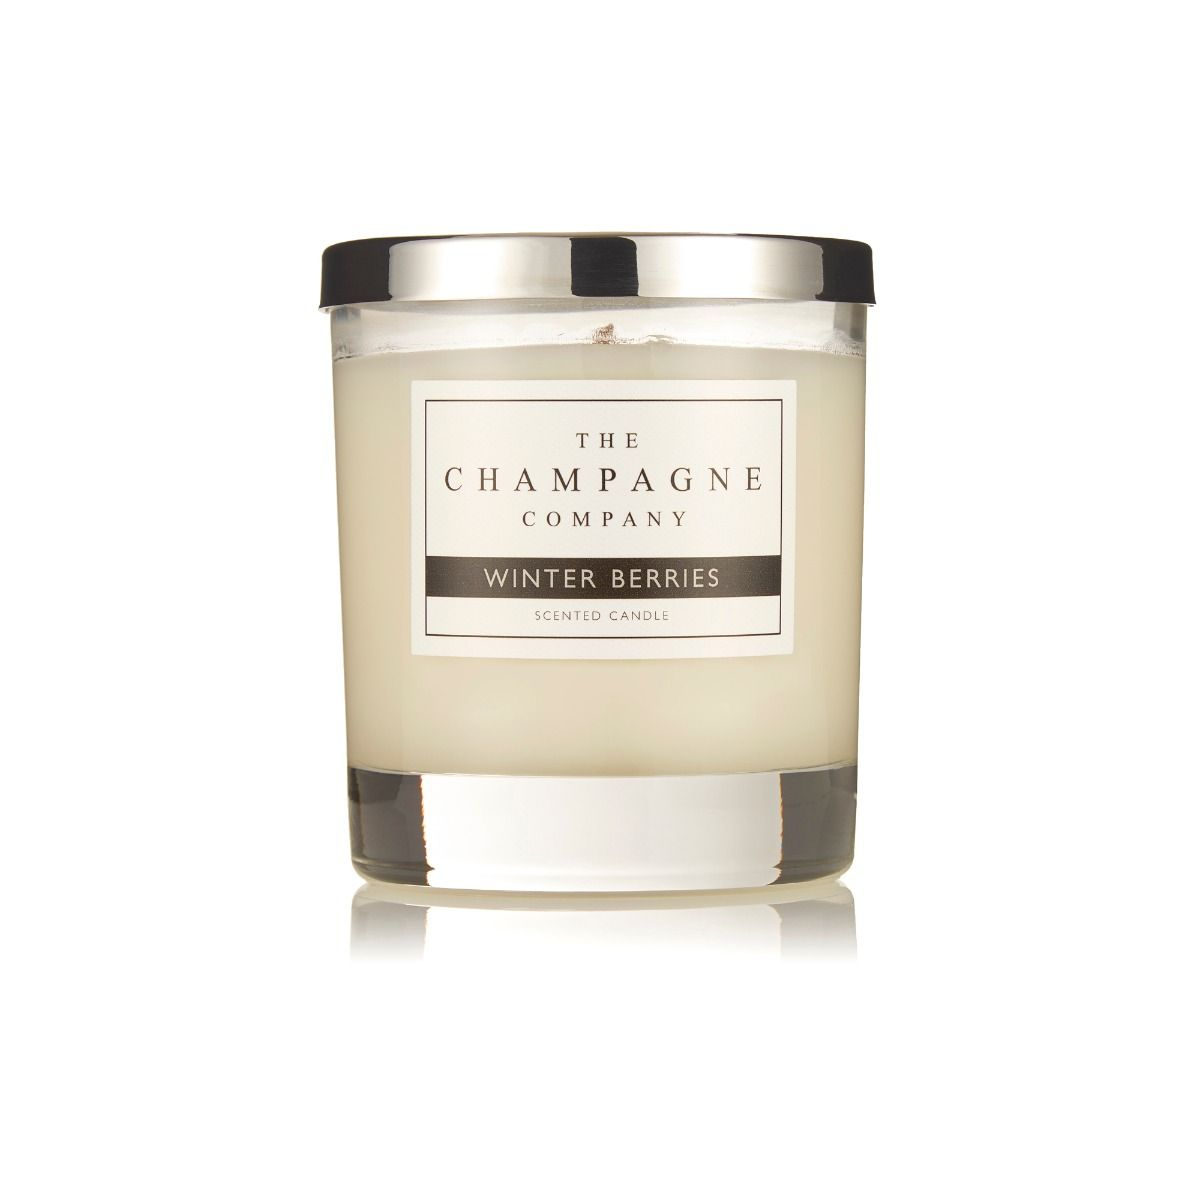 The Champagne Company Winter Berries Home Candle 200g